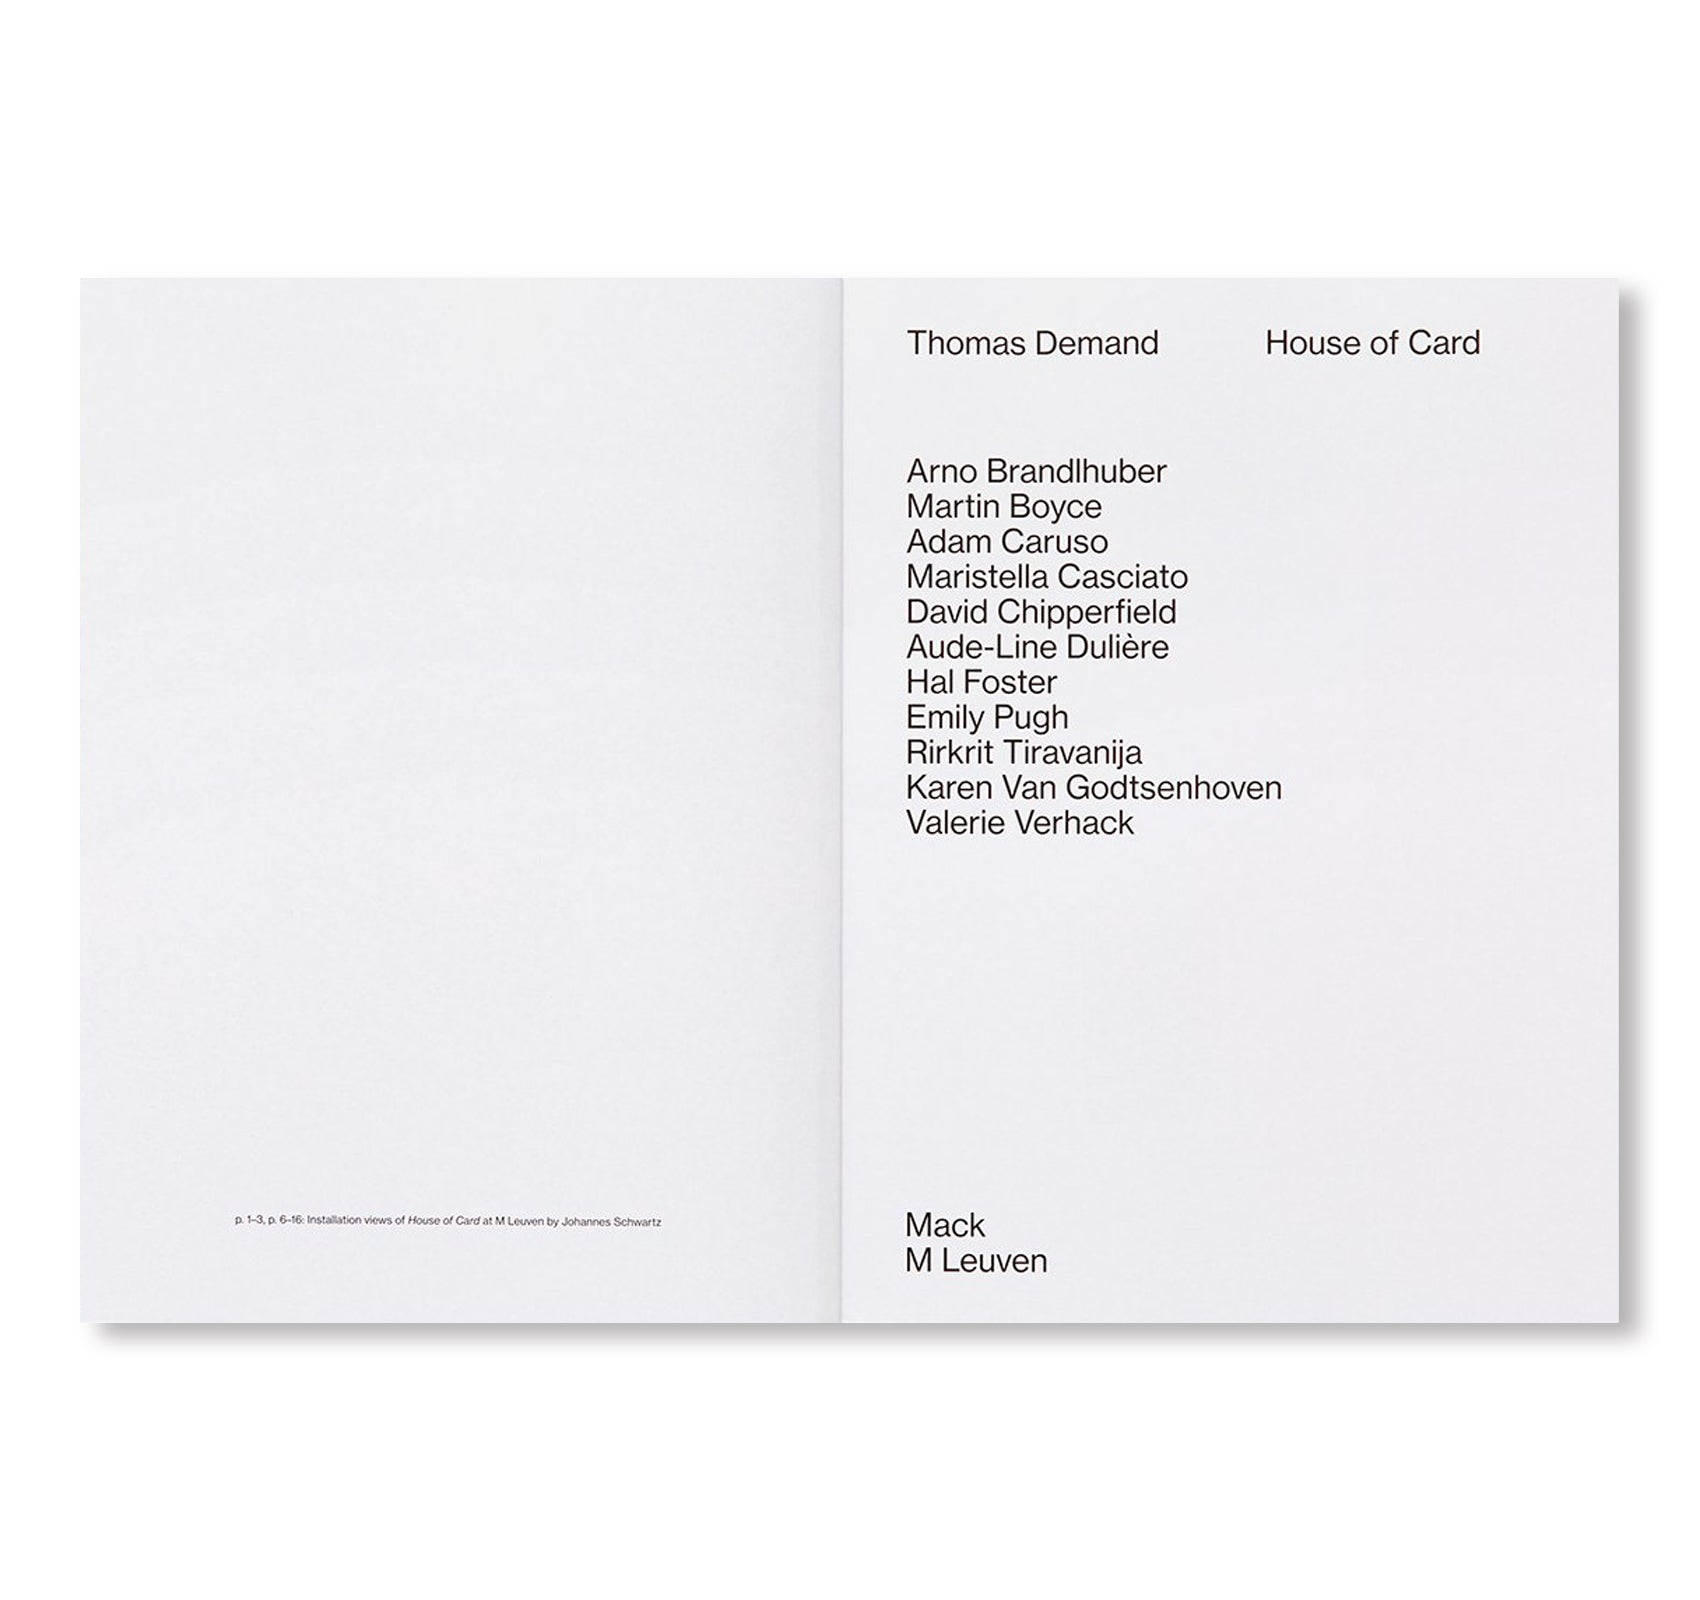 HOUSE OF CARD by Thomas Demand